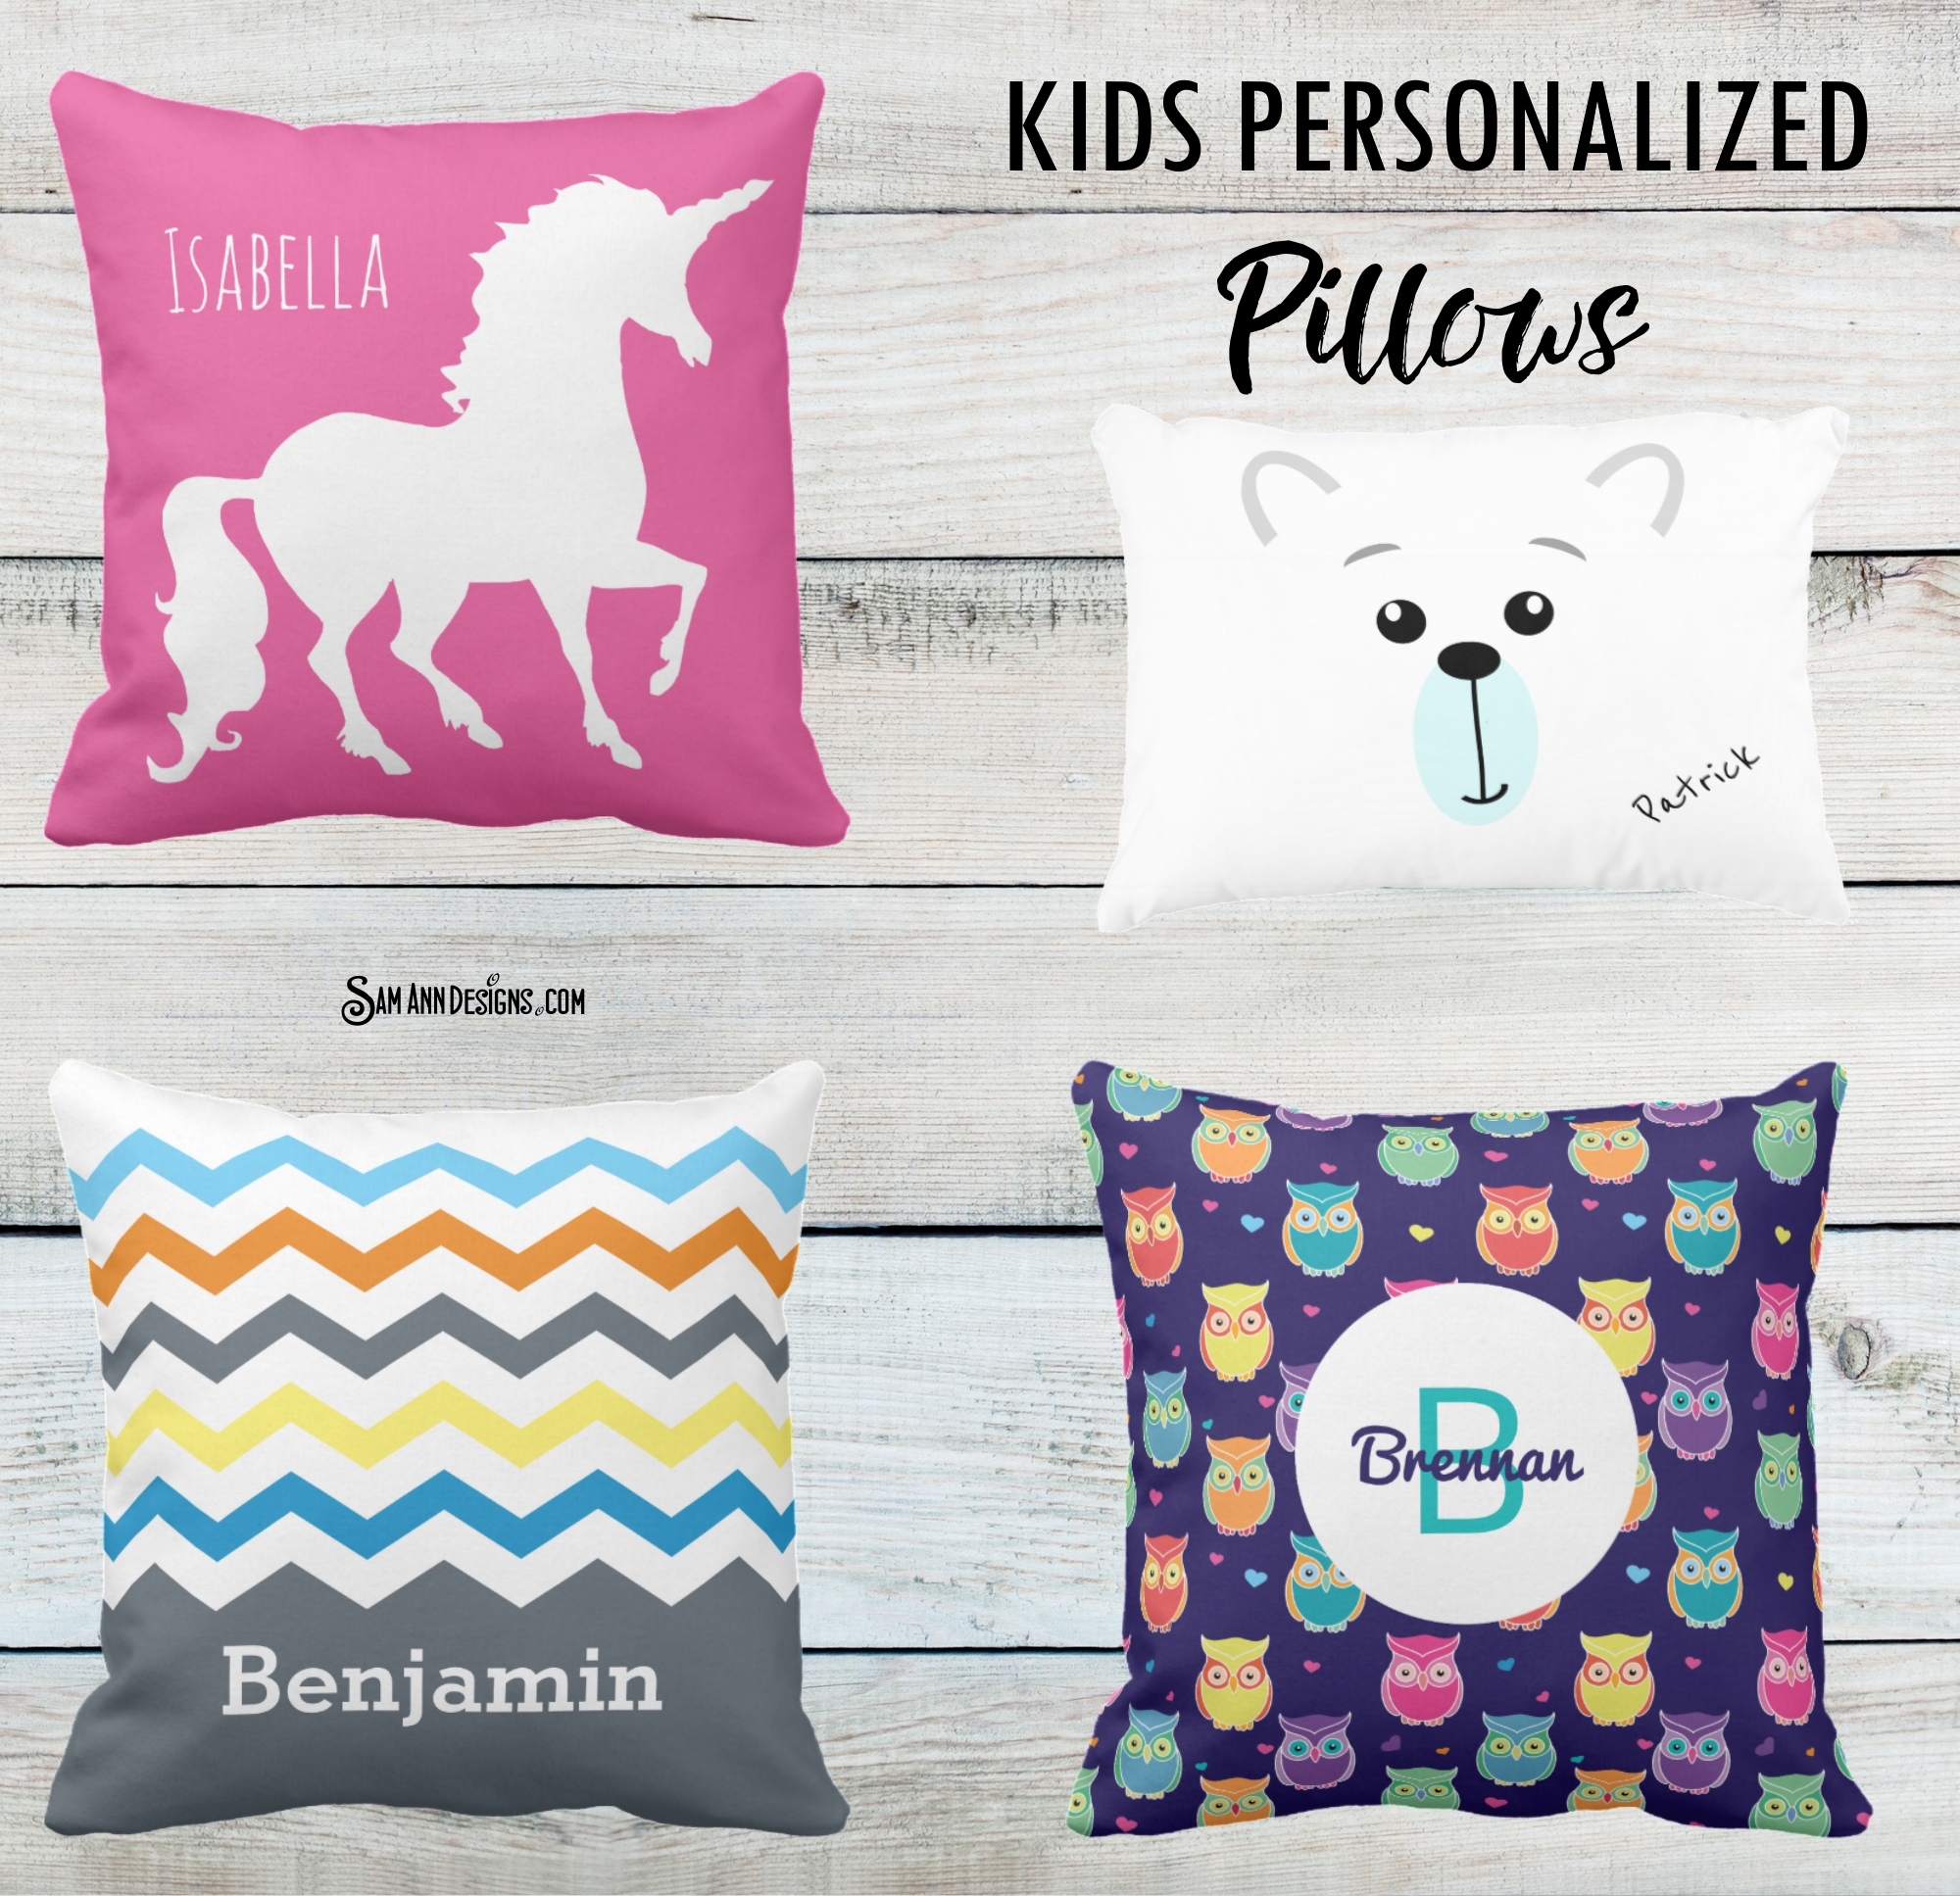 Kids Personalized Pillows